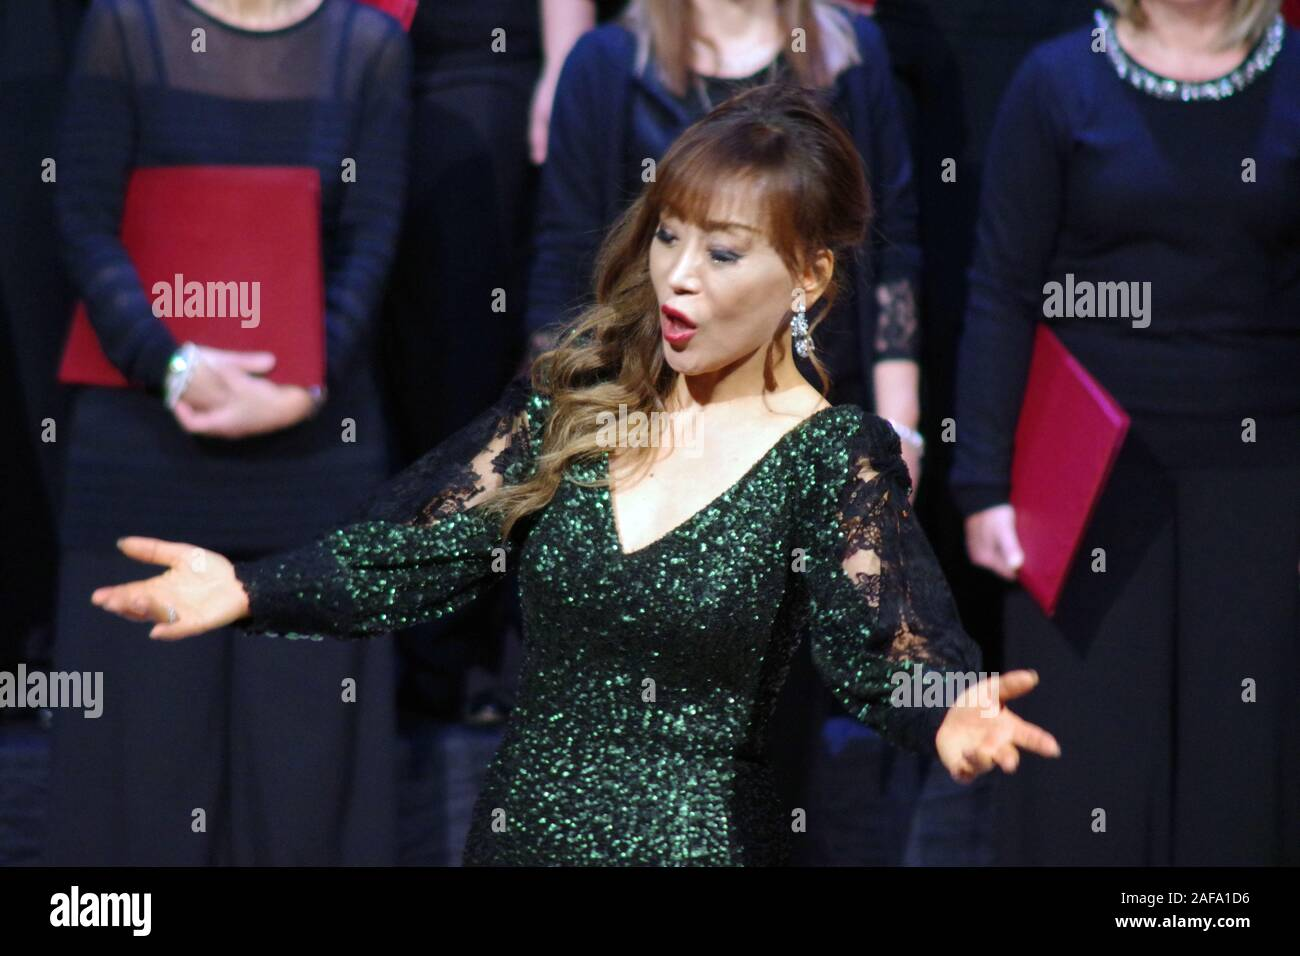 Sumi Jo, South Korean soprano in concert in Sassari, Sardinia, Italy , 2019 December, 12. Stock Photo